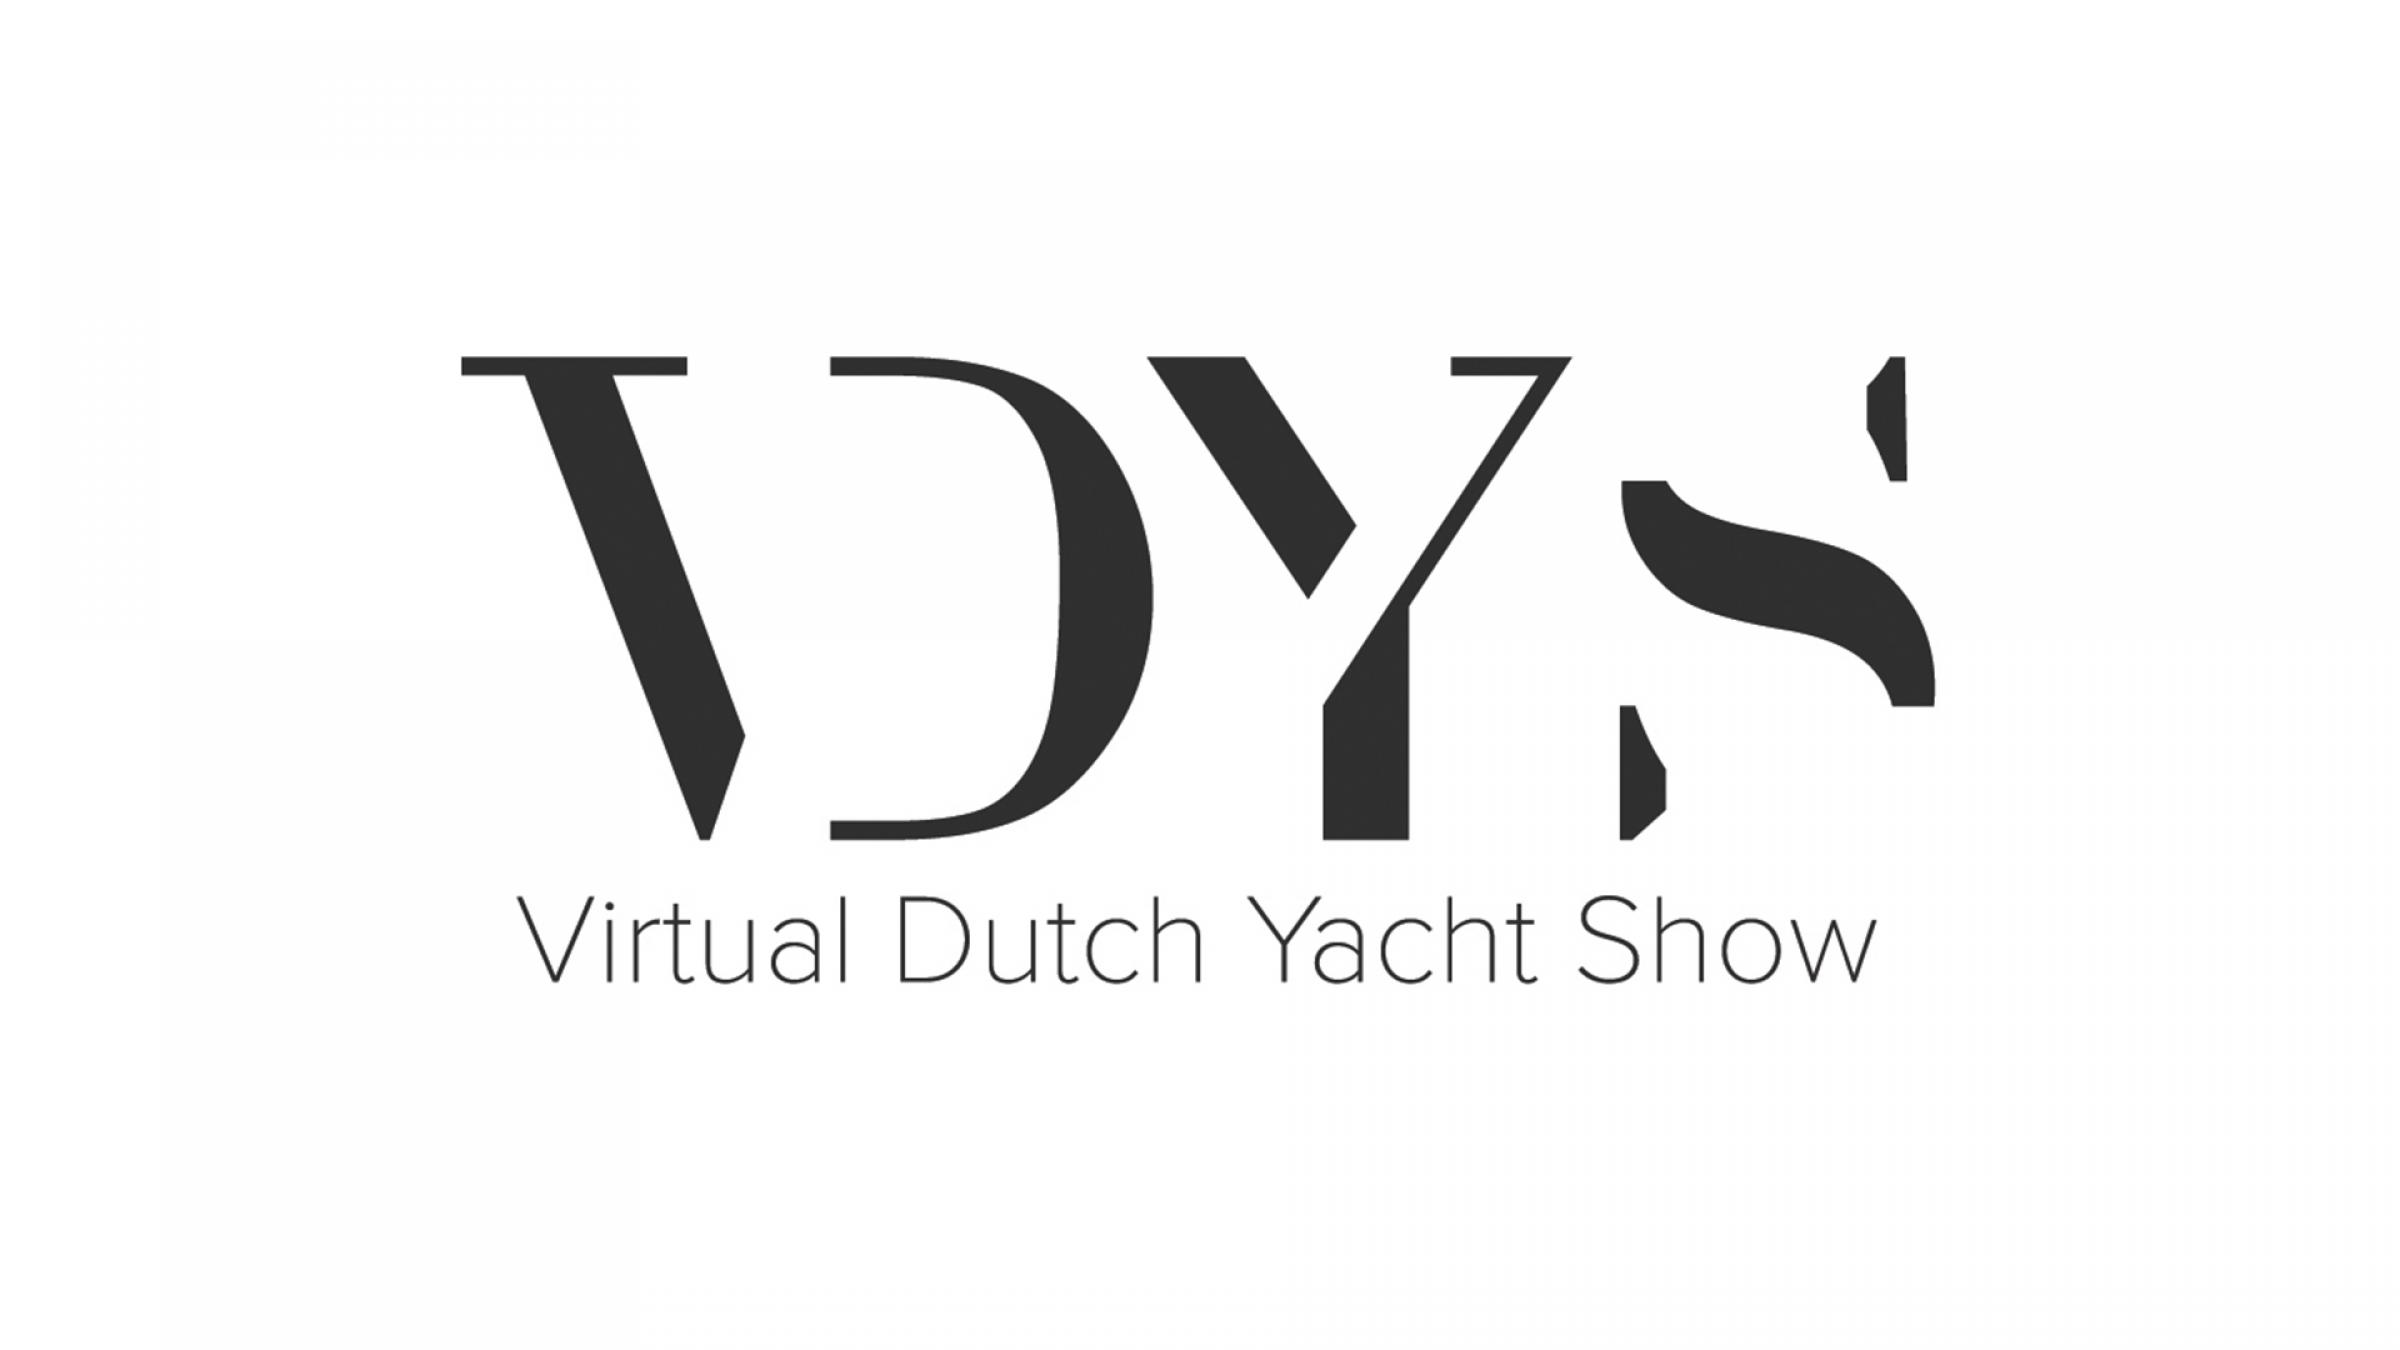 Virtual Dutch Yacht Show